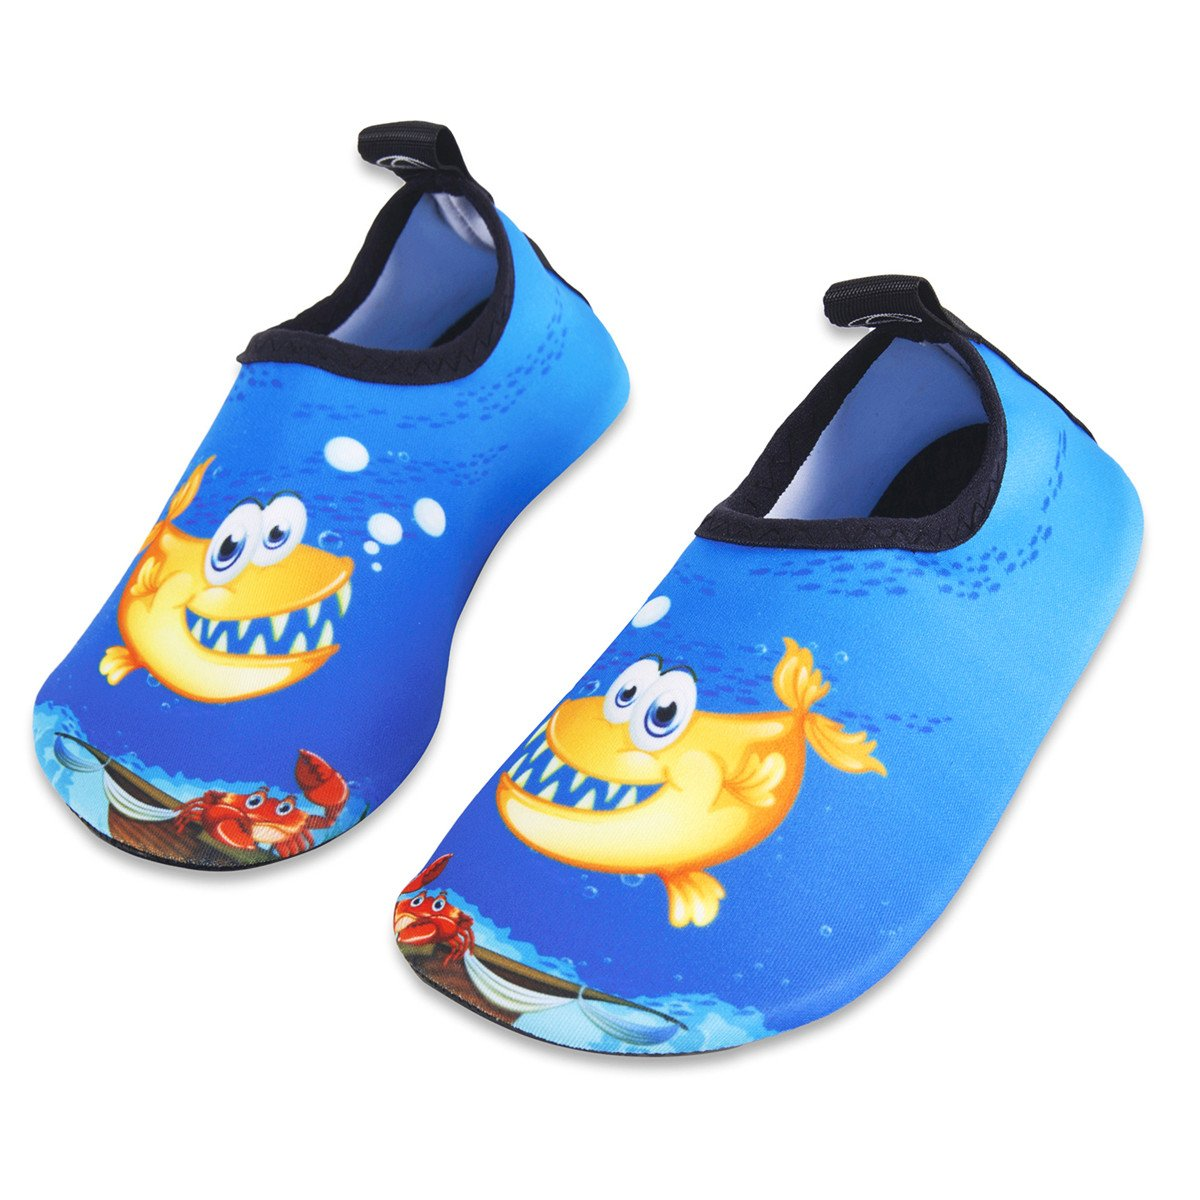 Kids Water Swim Shoes Barefoot Aqua Socks Shoes Quick Dry Non-Slip for Baby Boys & Girls (Bubble Fish, 24/25)